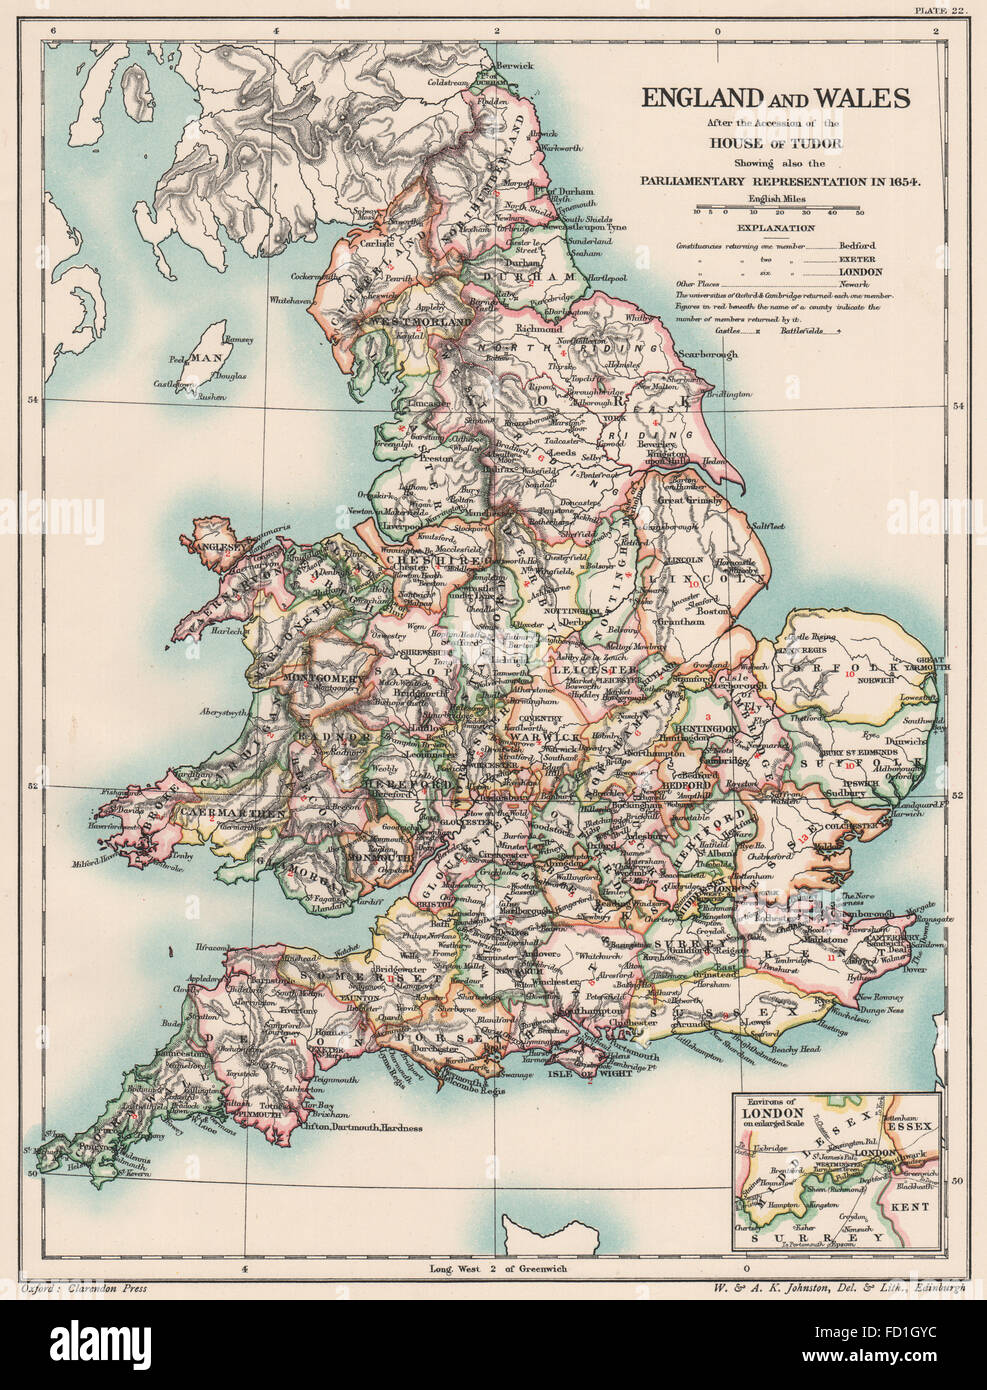 TUDOR BRITAIN: England Wales 1654. Parliamentary representation 1654, 1902  map